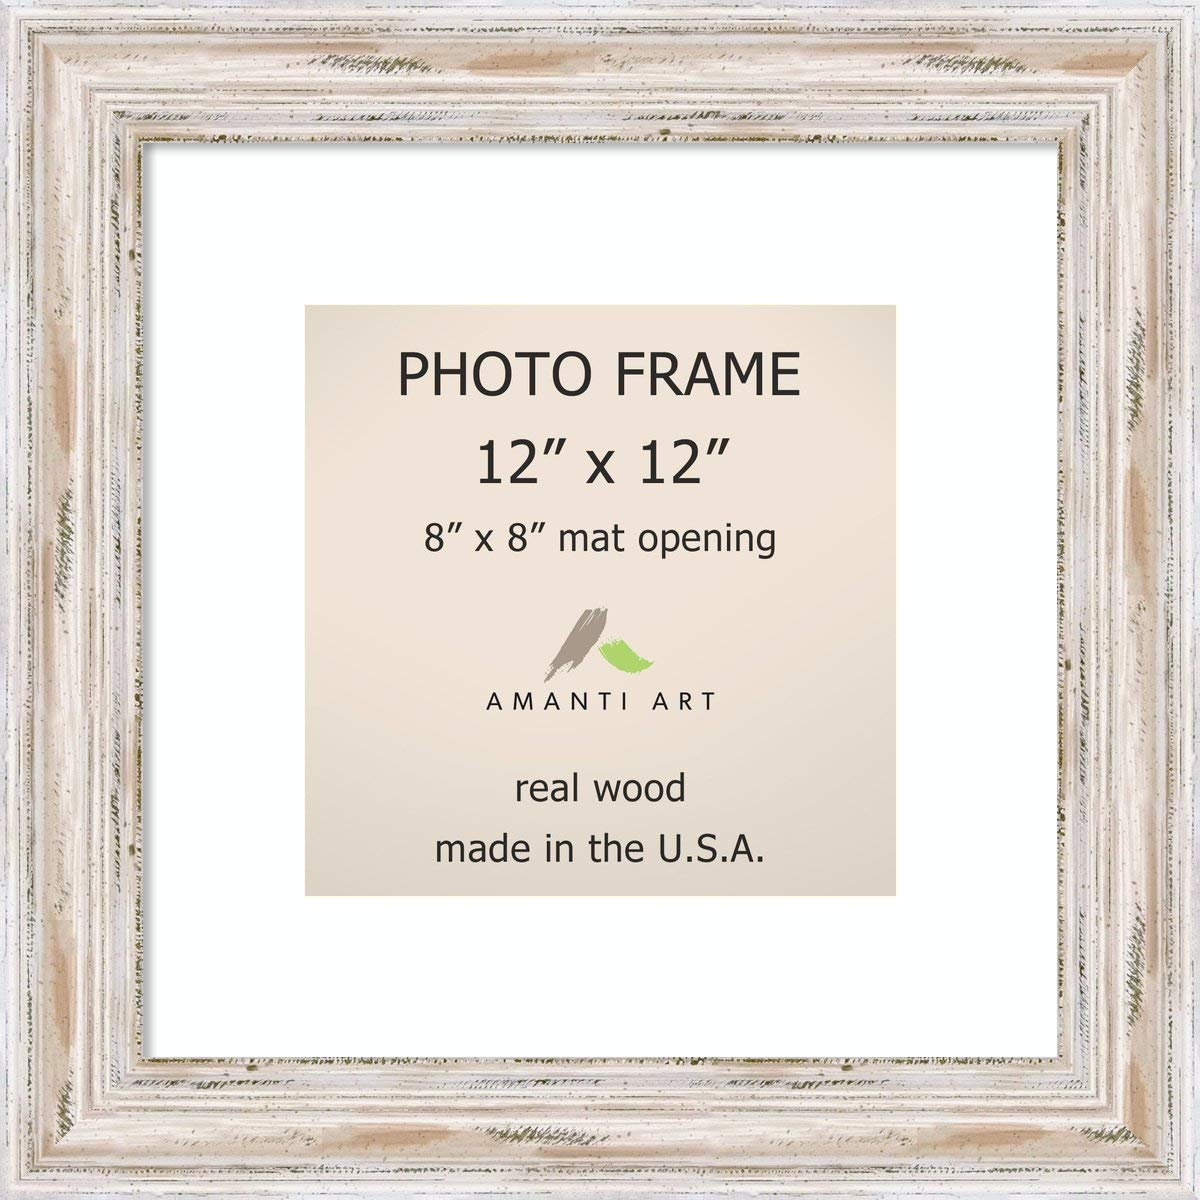 11 x 14 11 x 14 78343 Timeless Frames Lifes Great Moments White